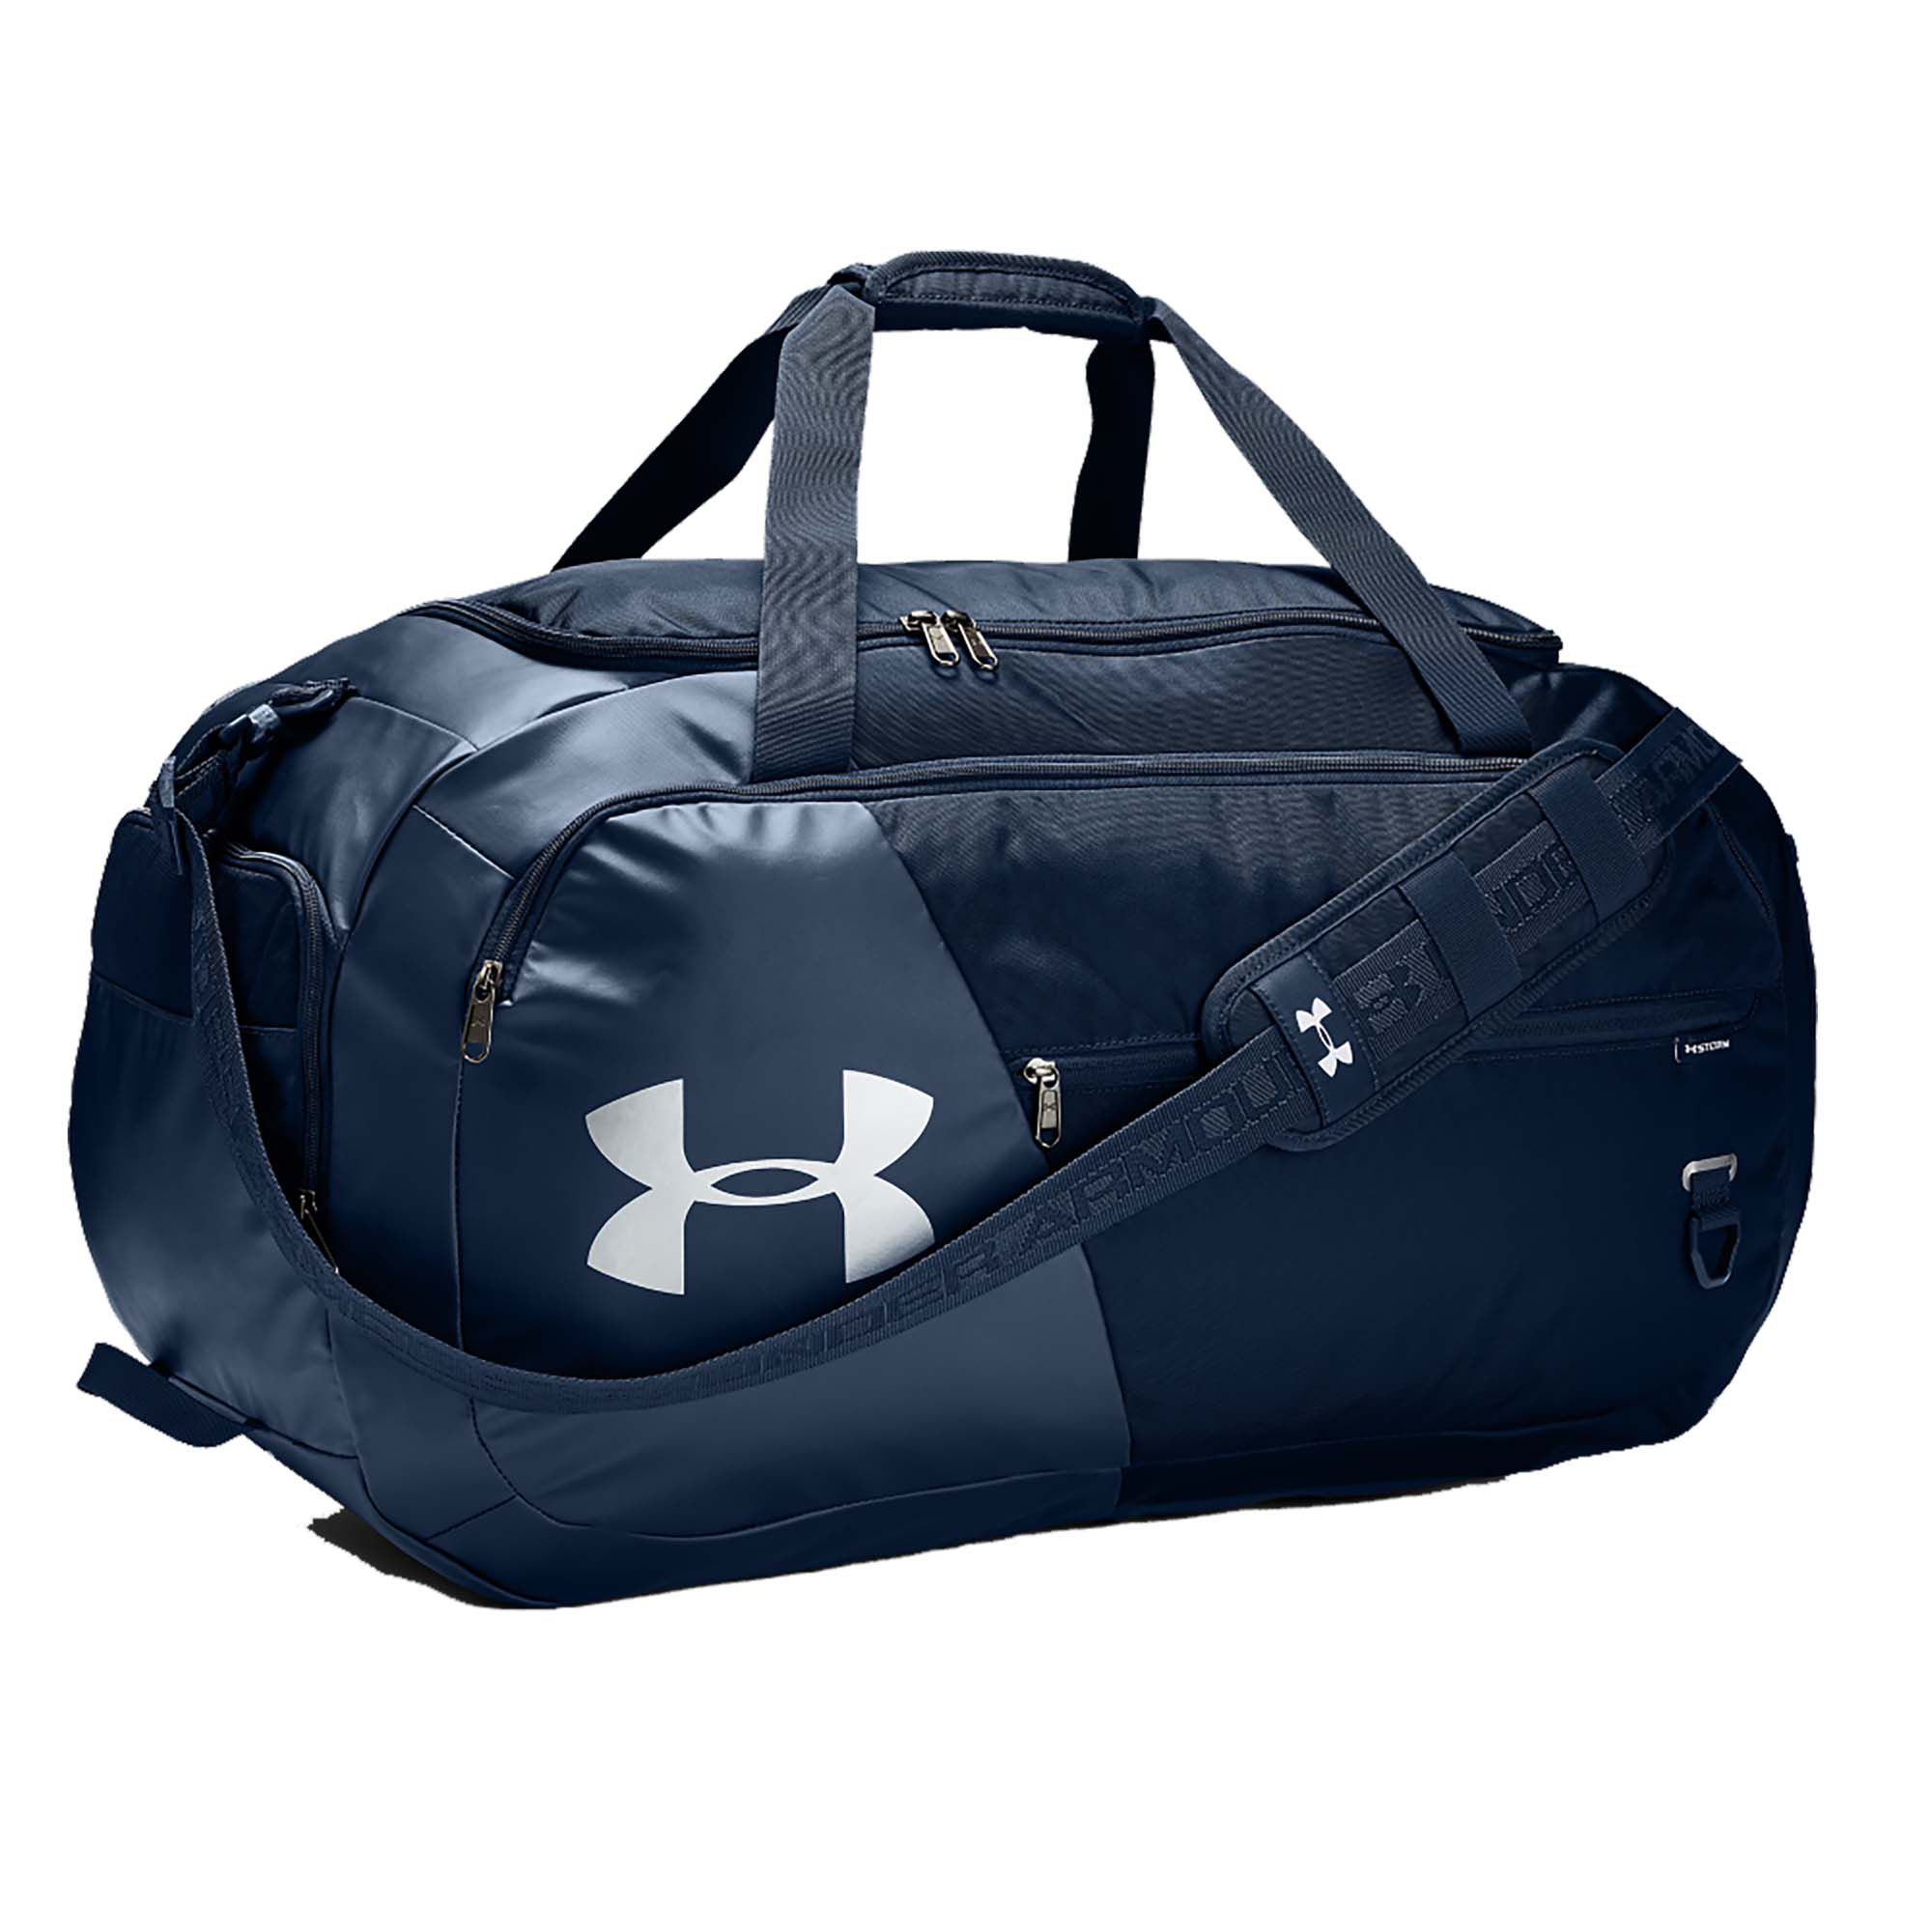 c2fdb95c197 Under Armour Undeniable 4.0 Large Duffle Bag | DICK'S Sporting ...